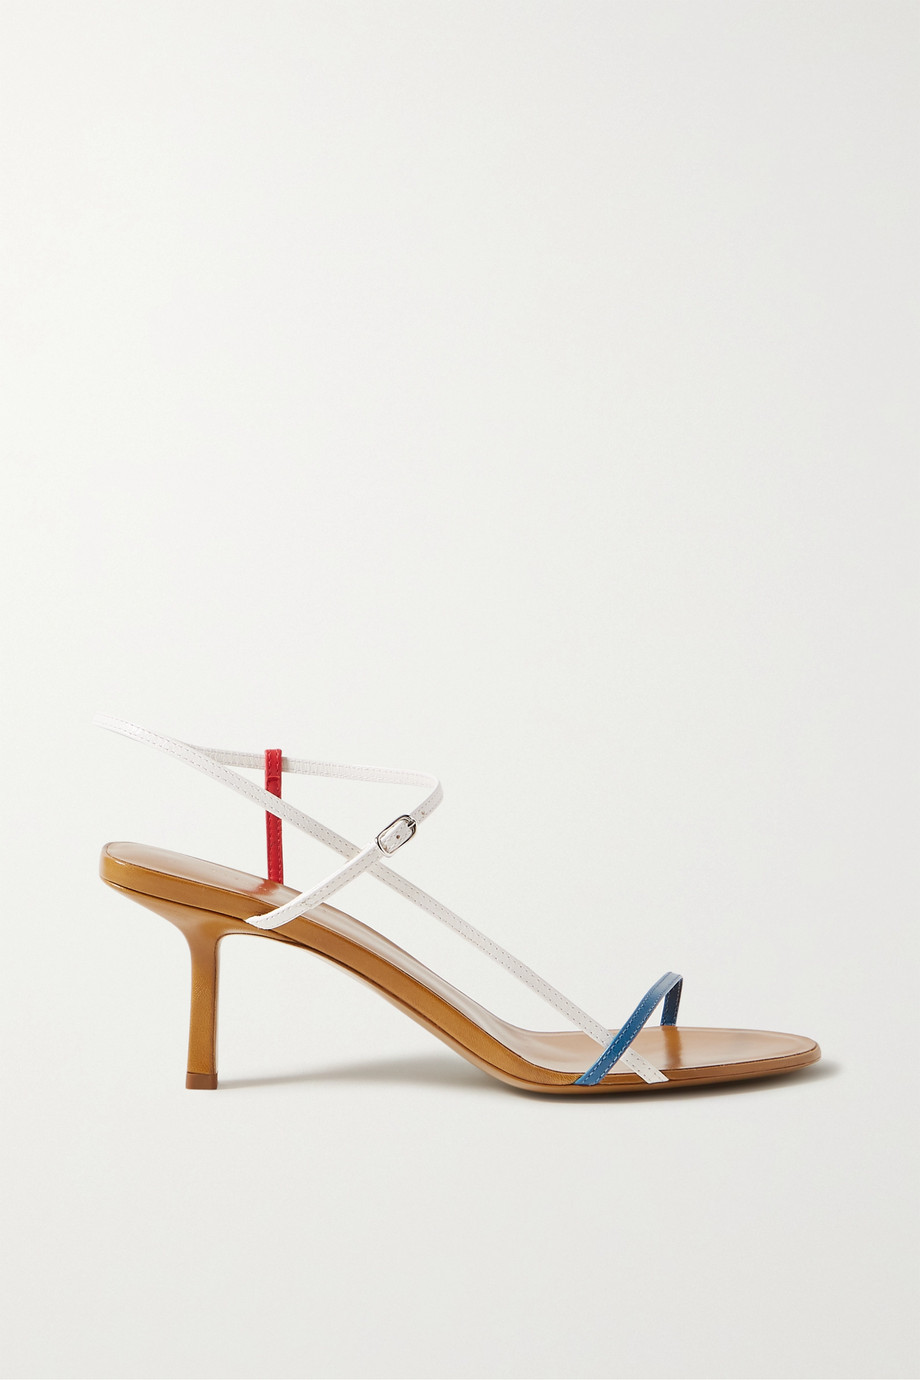 The Row Bare color-block leather sandals